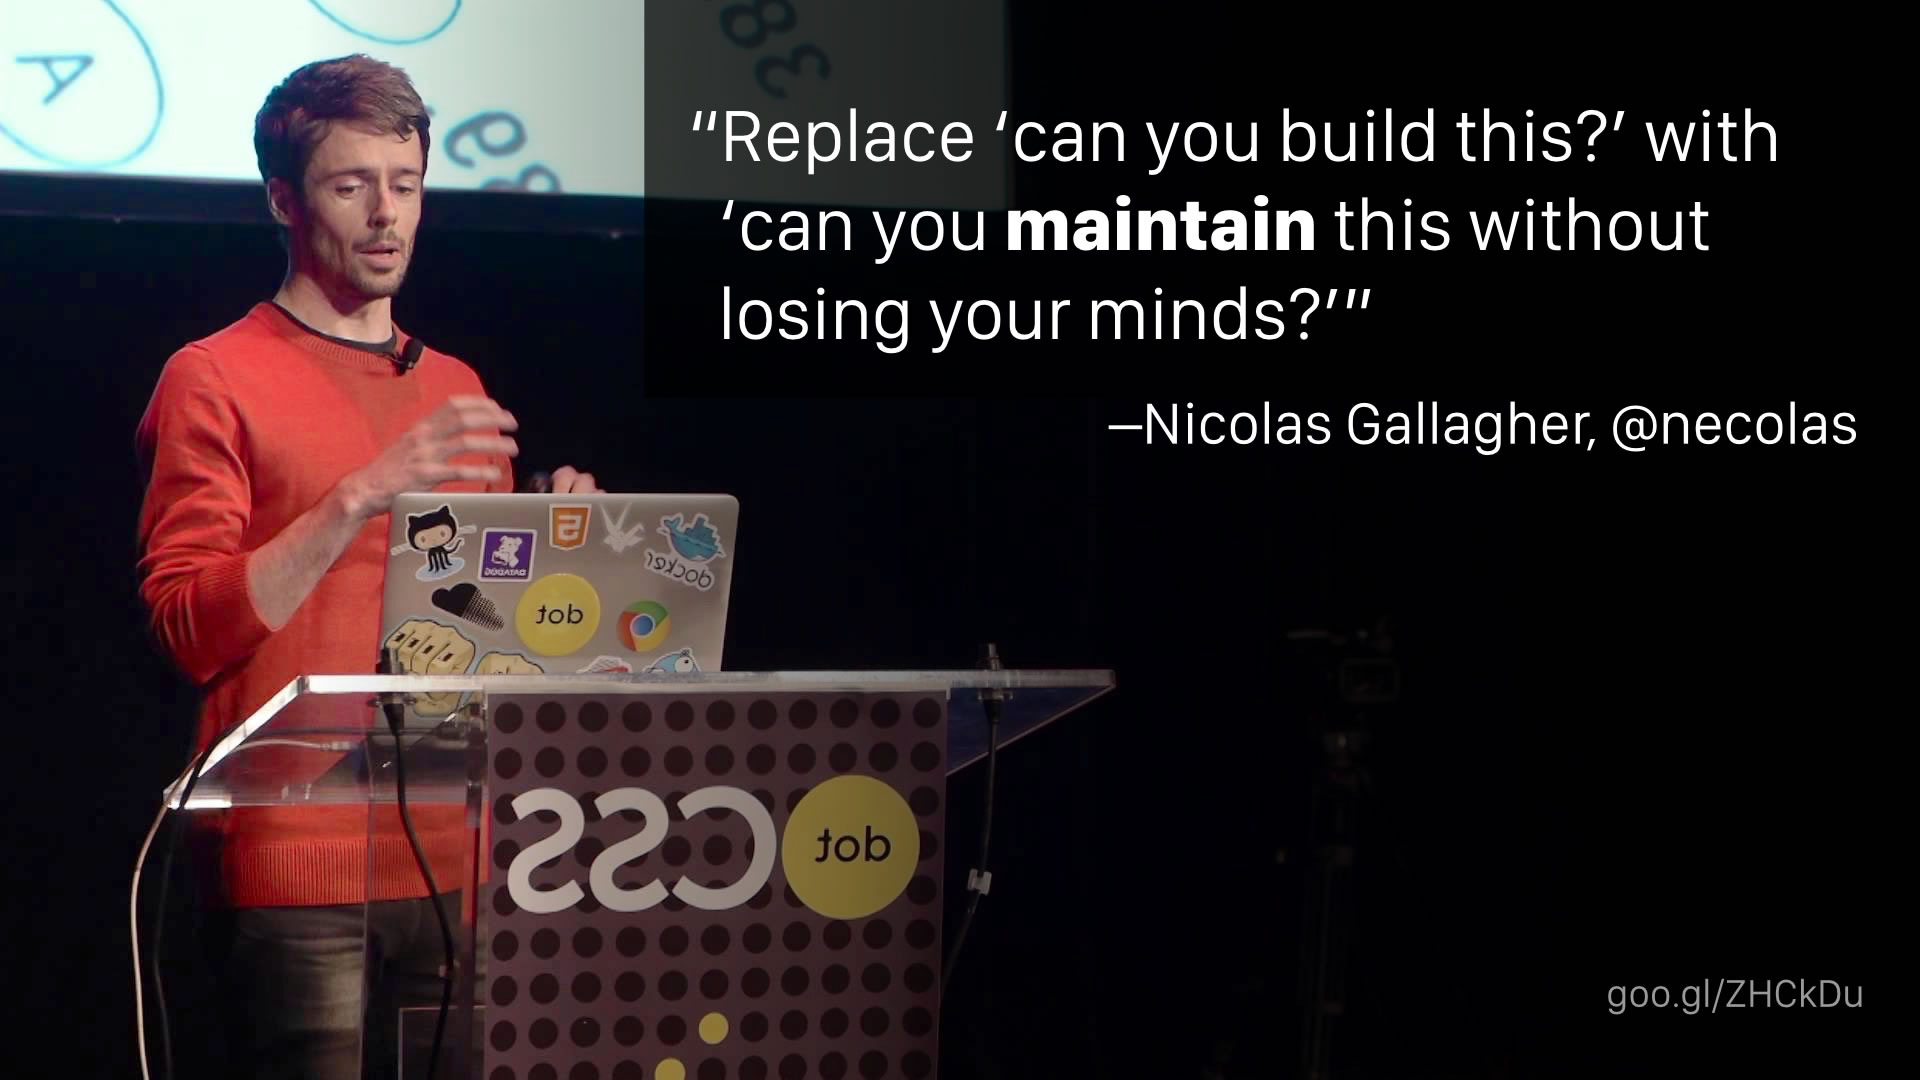 """Replace 'can you build this?' with 'can you maintain this without losing your minds?'"" —Nicolas Gallagher"